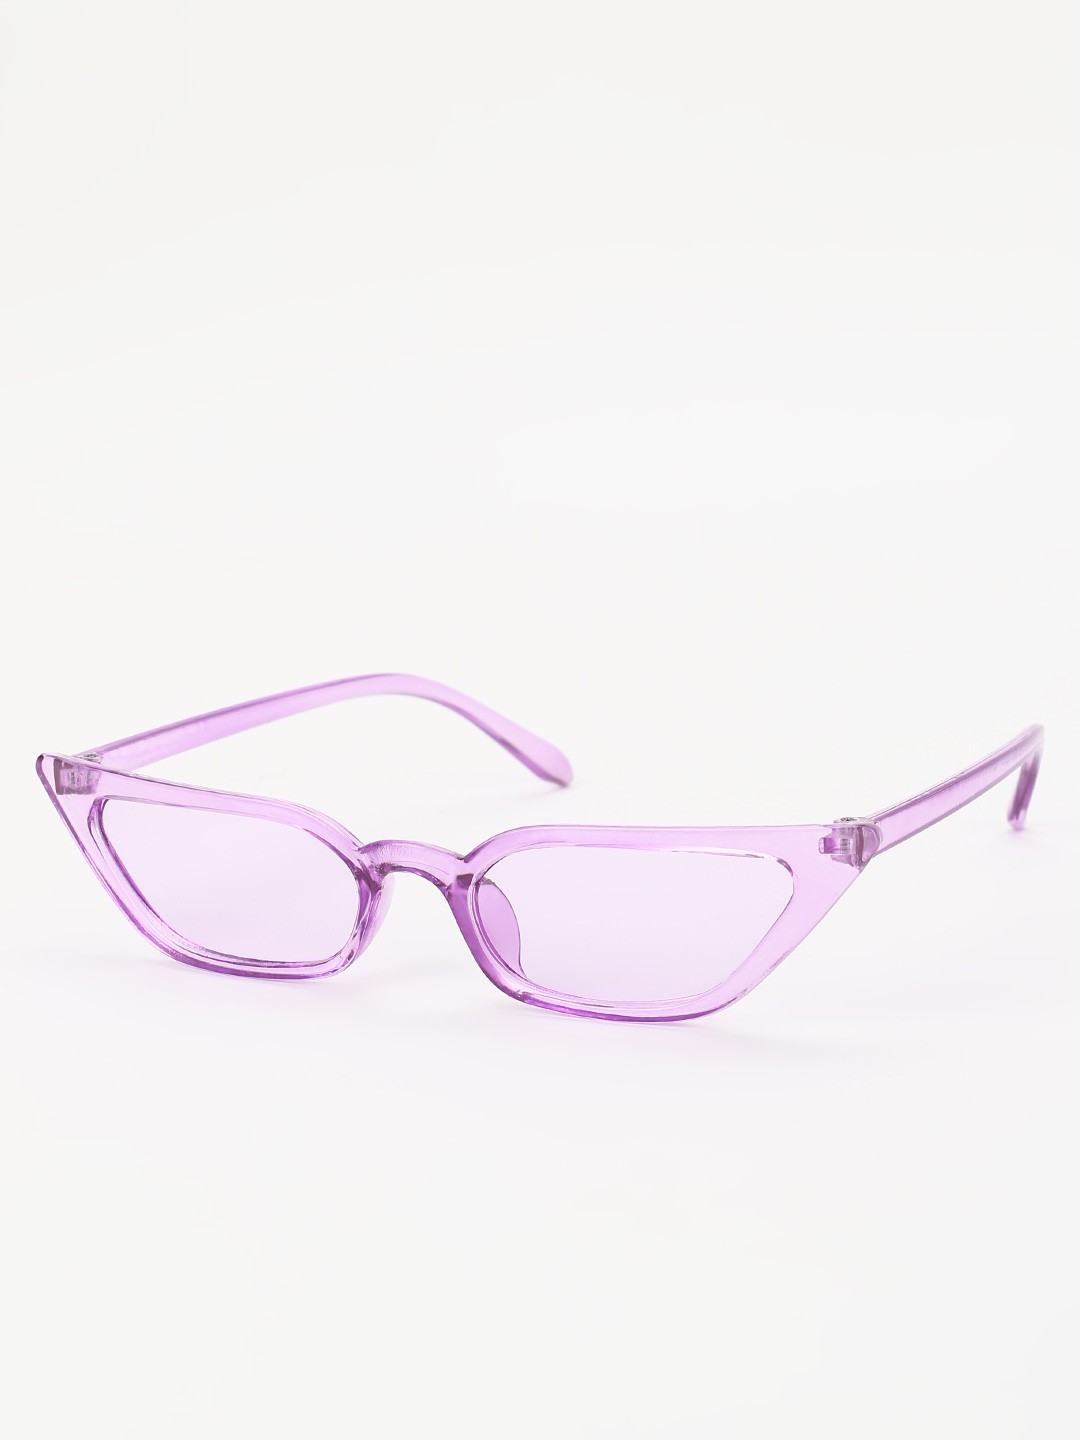 Sneak-a-Peek Purple Sleek Cateye Sunglasses 1